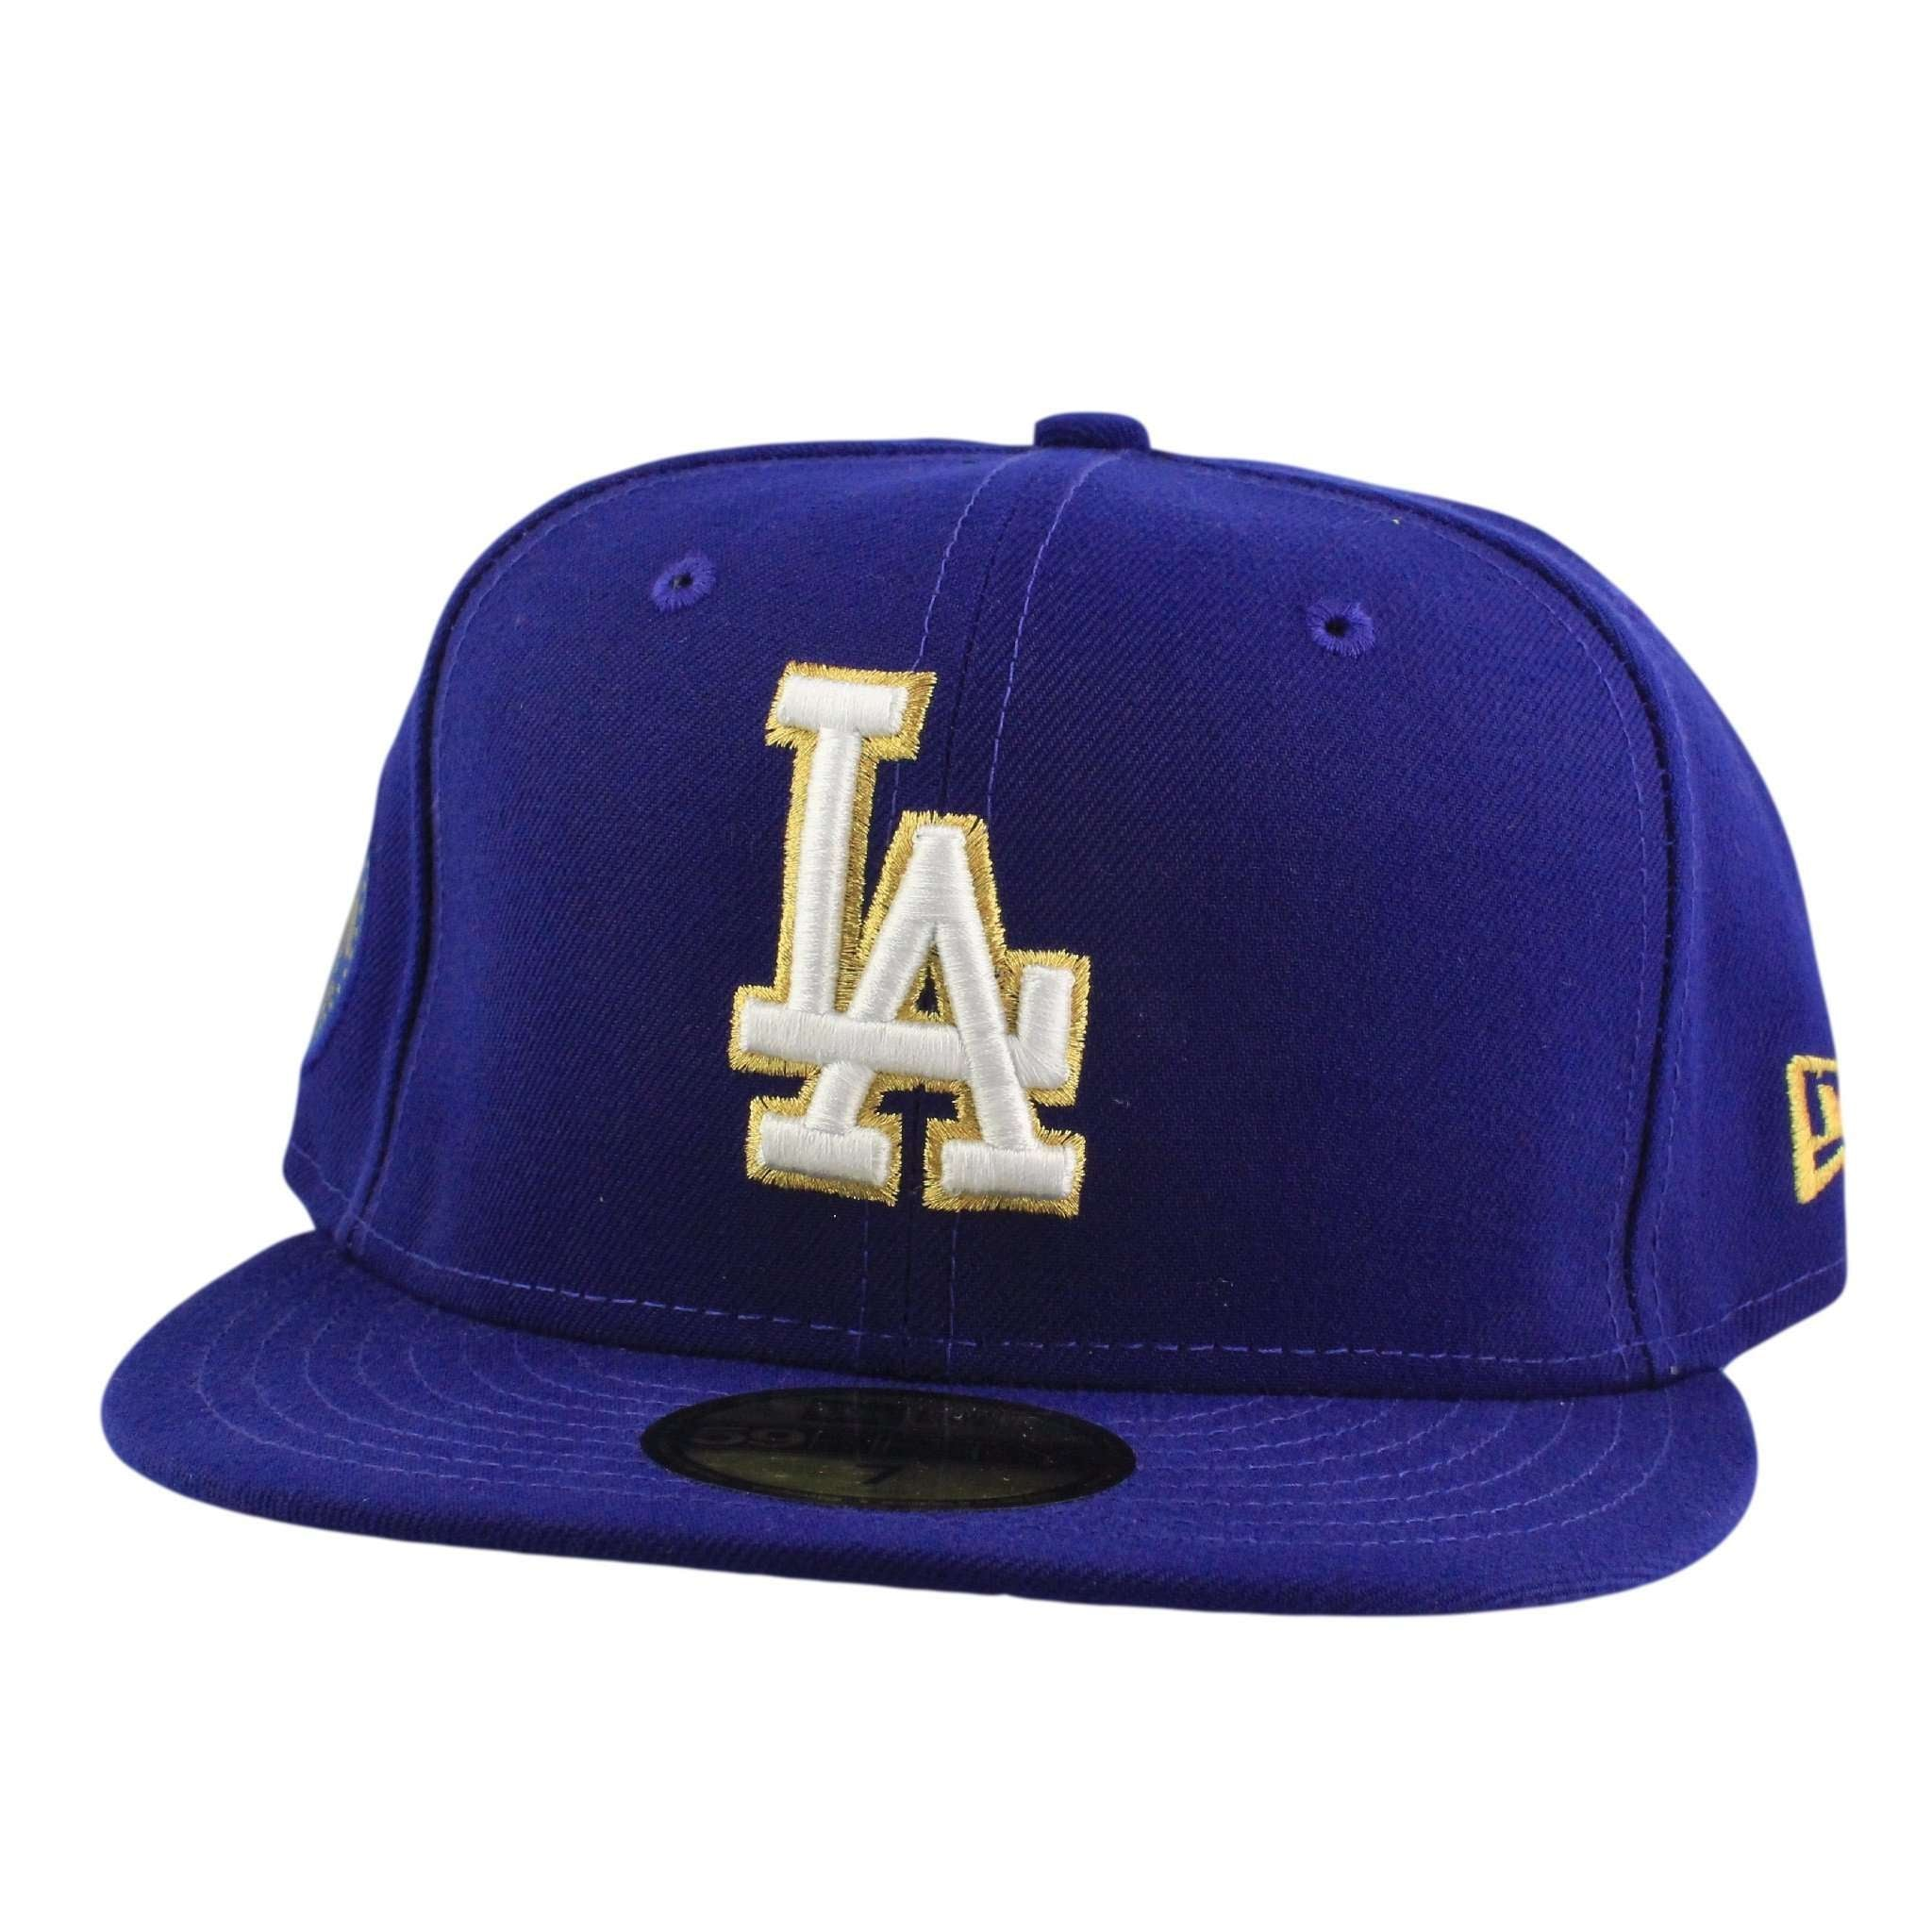 27c42802a06 Los Angeles Dodgers Finest Blue Blue Fitted